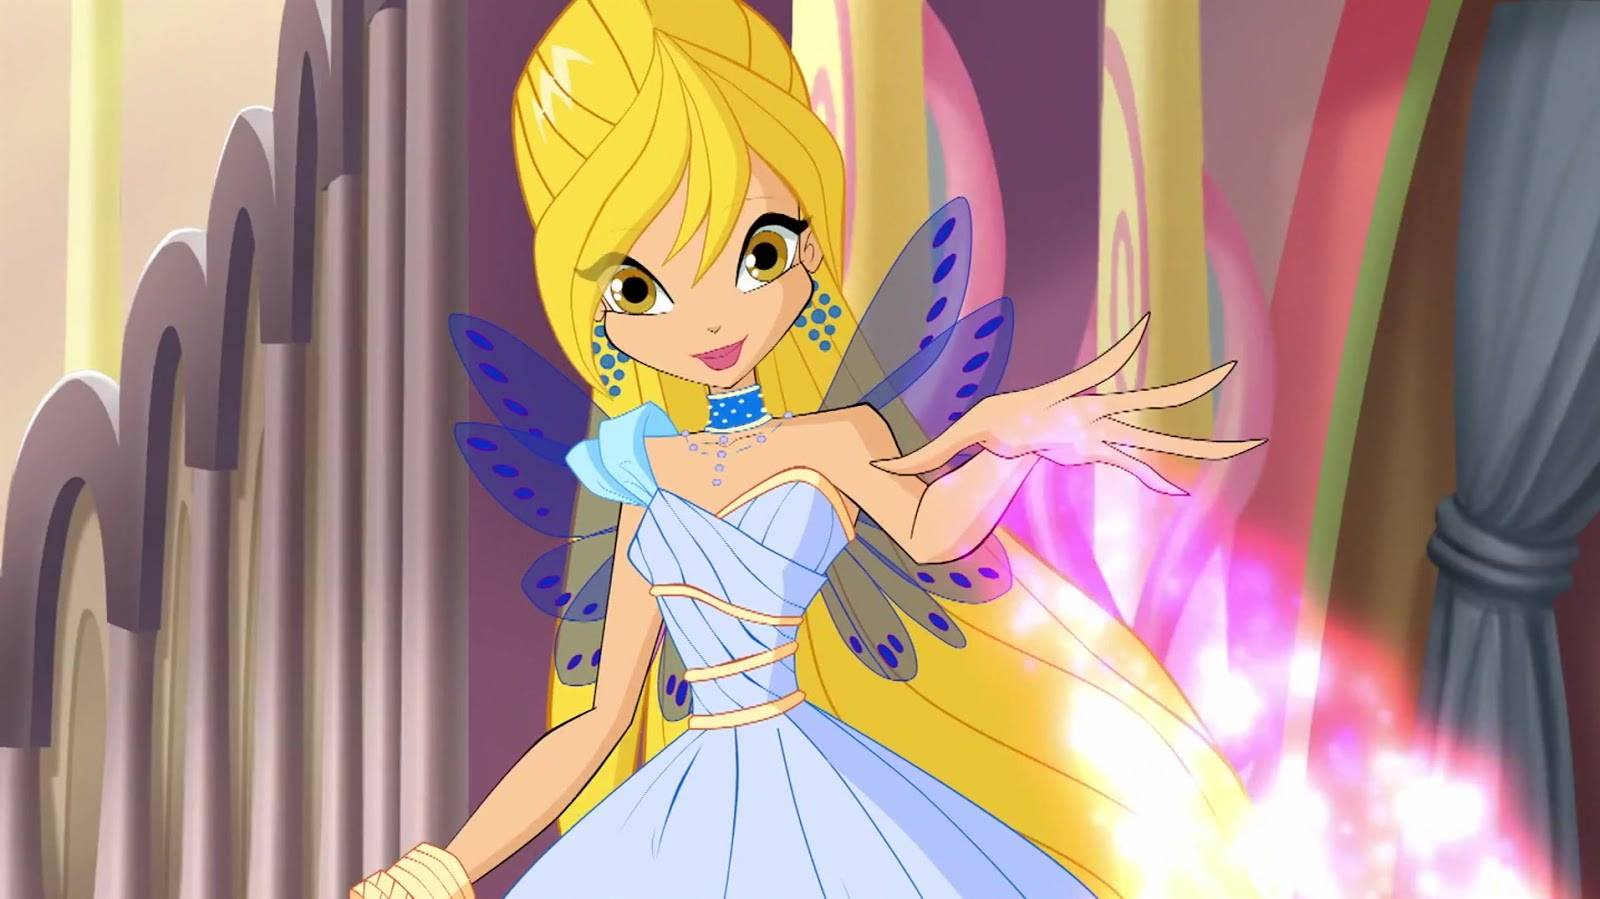 Winx club season 2 stella